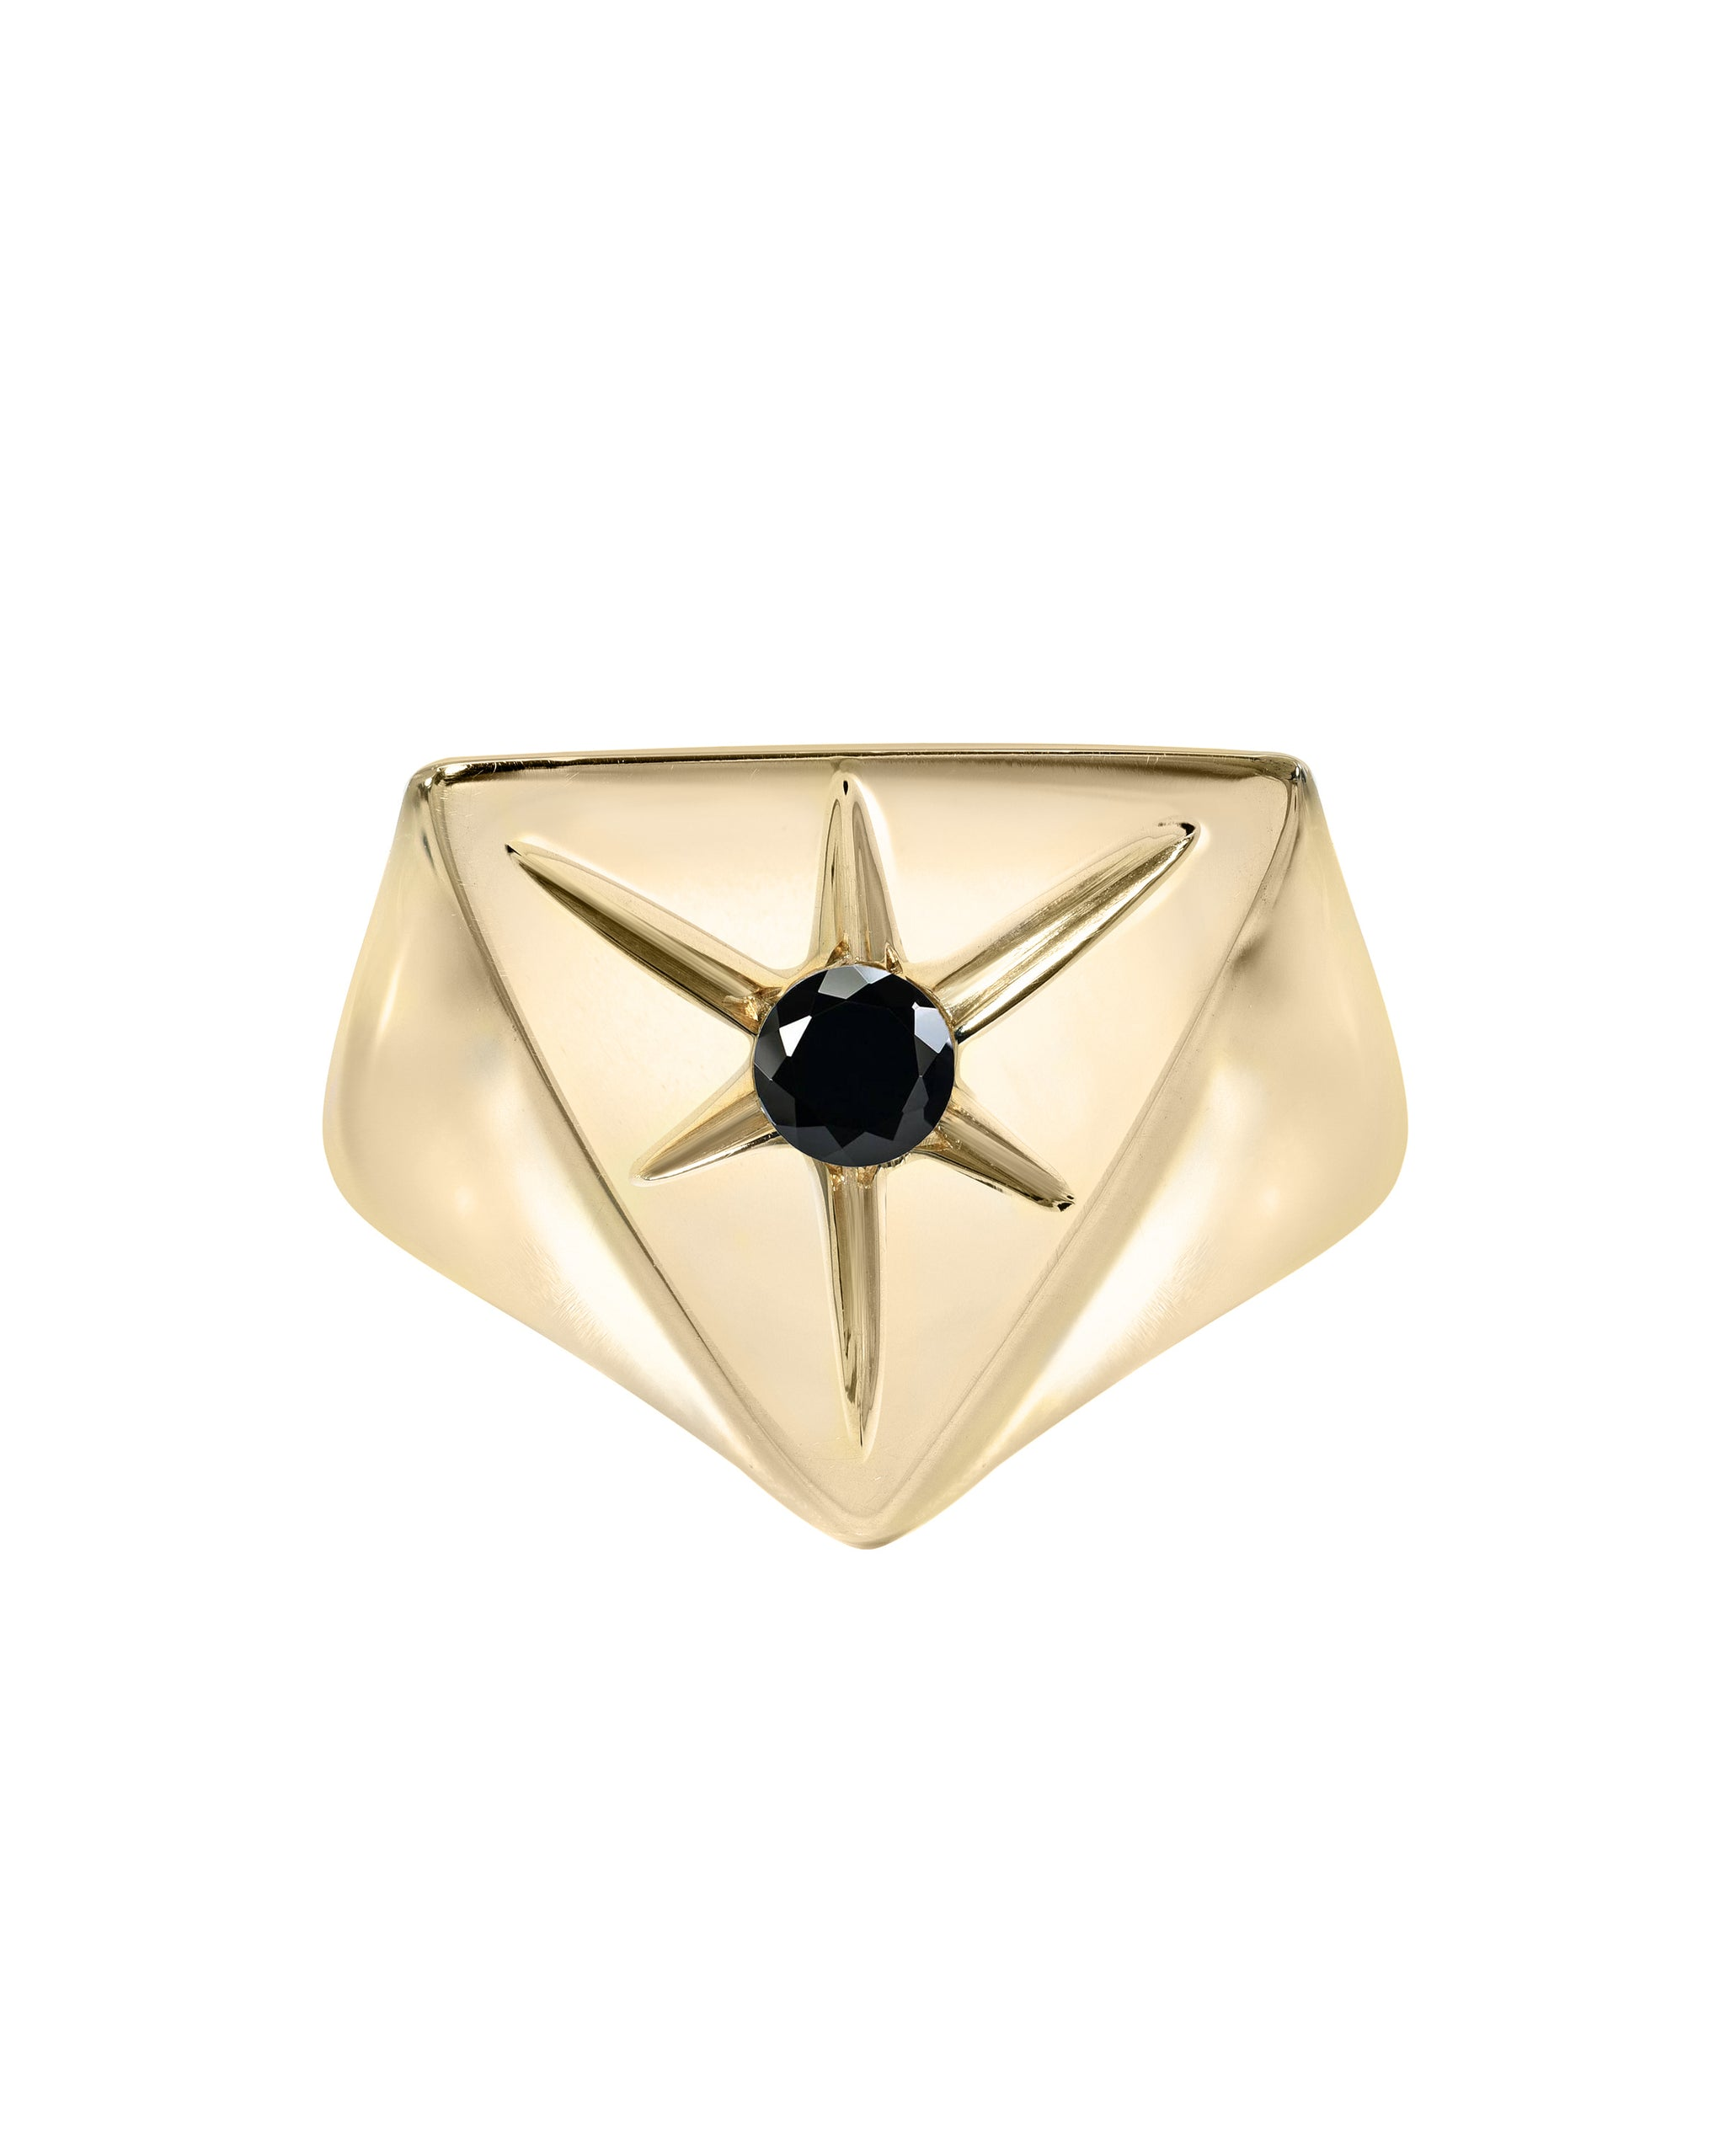 In the Stars Ring, Onyx & Gold Vermeil pyramid signet ring, handmade by Turquoise + Tobacco in Los Angeles, California